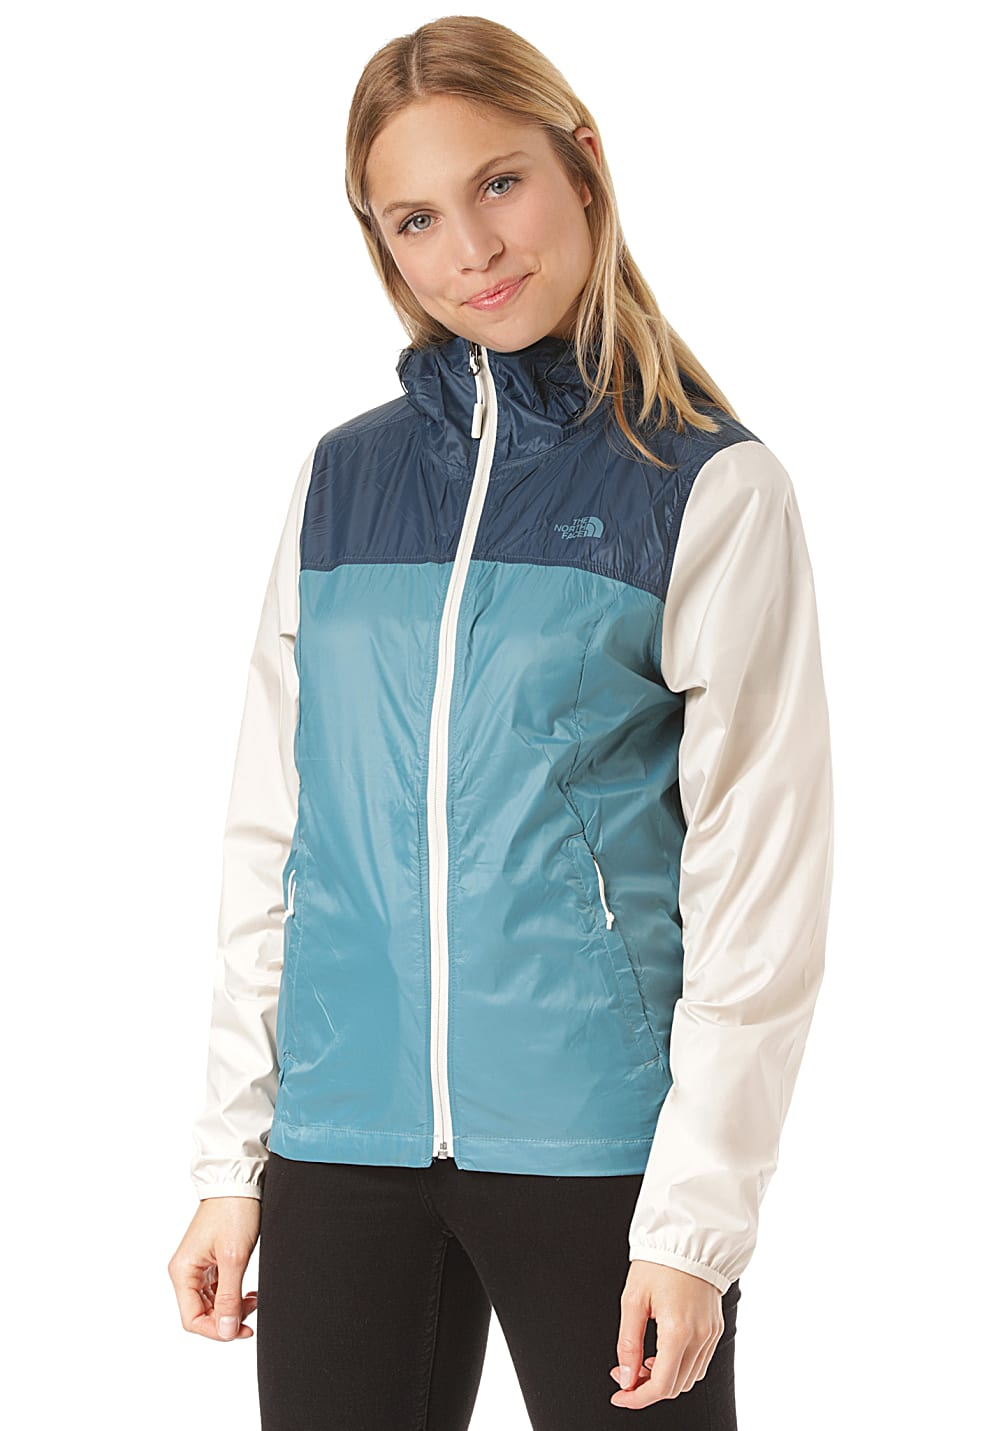 6c09da91d THE NORTH FACE Cyclone - Outdoor Jacket for Women - Blue